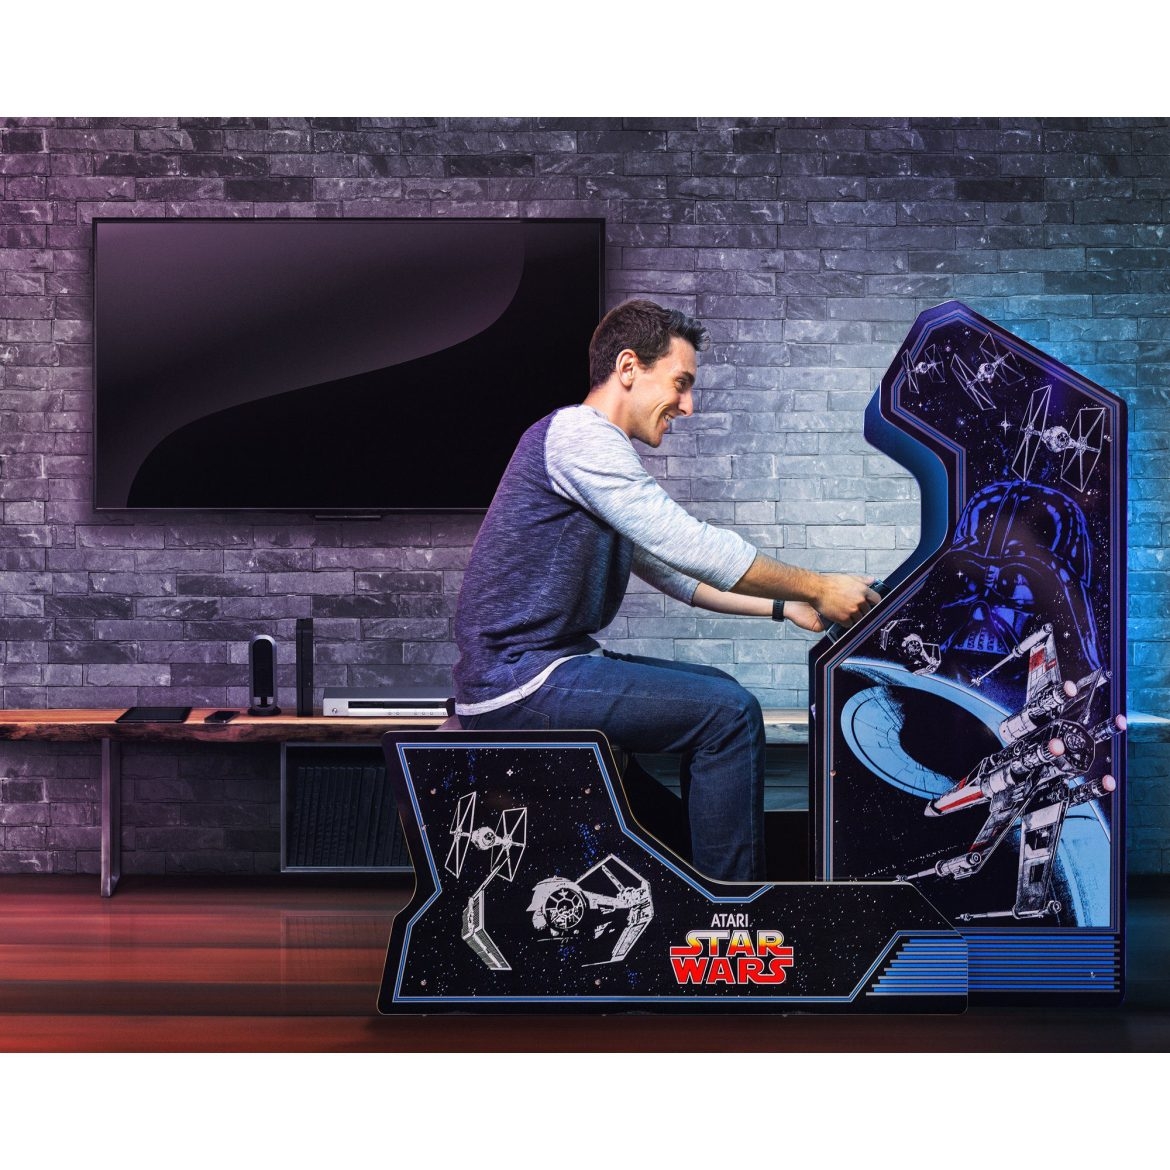 Star Wars Arcade – I need this, for a friend